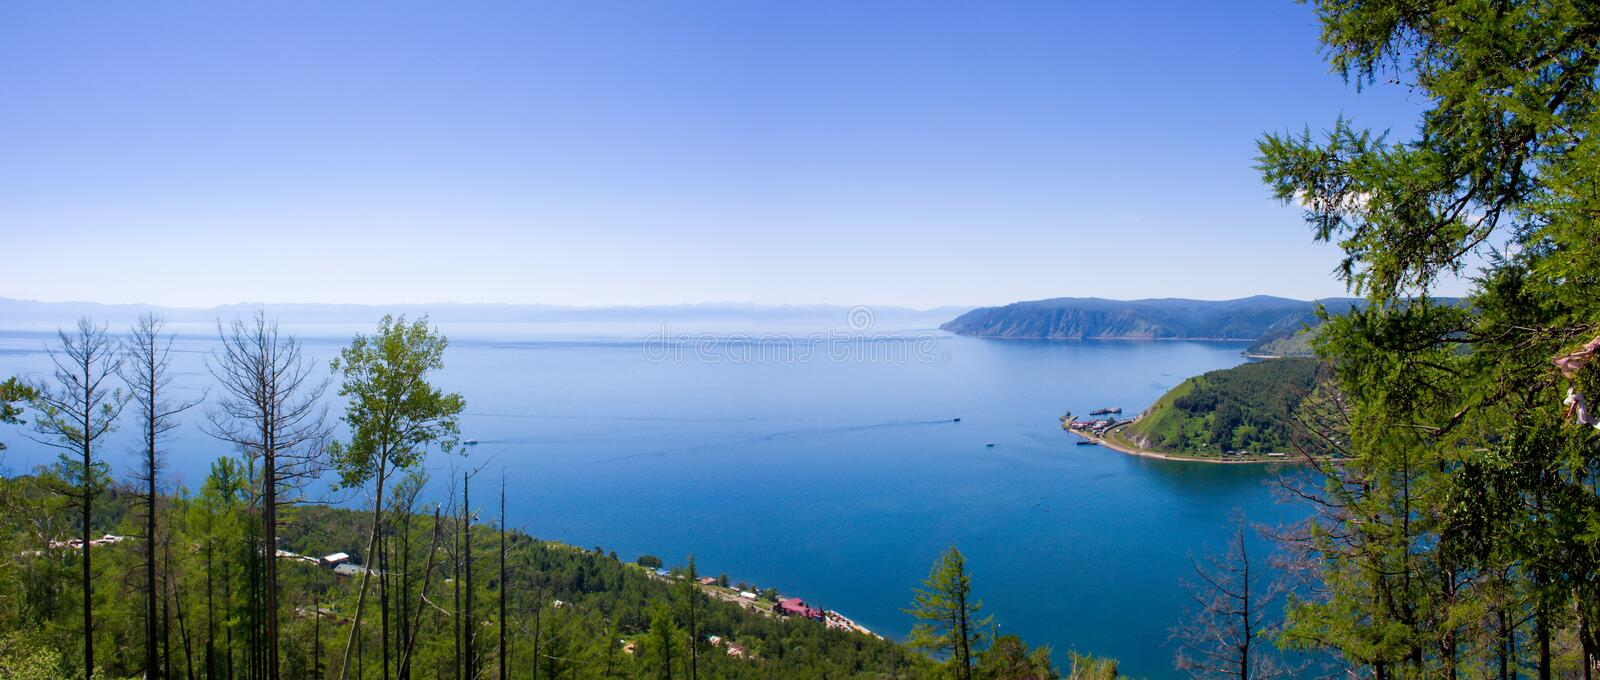 Viewpoint of the Angara River flowing from Lake Baikal, Siberia, Russia royalty free stock photography